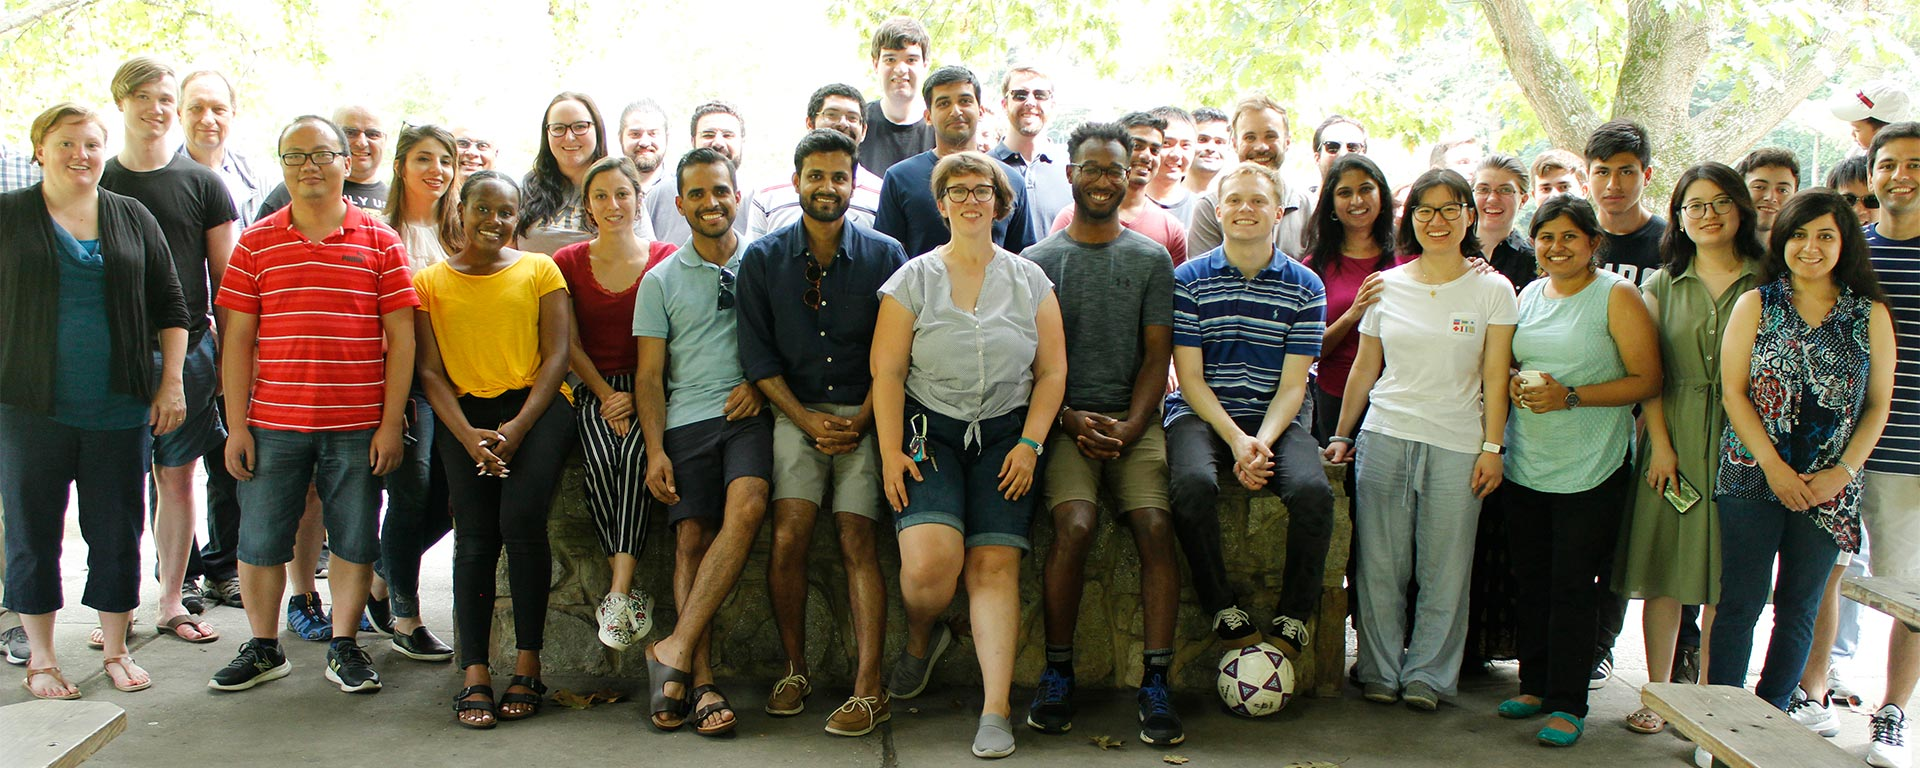 August 2019 Graduate Student Picnic, Photo Credit: Andrea Miller, GPC